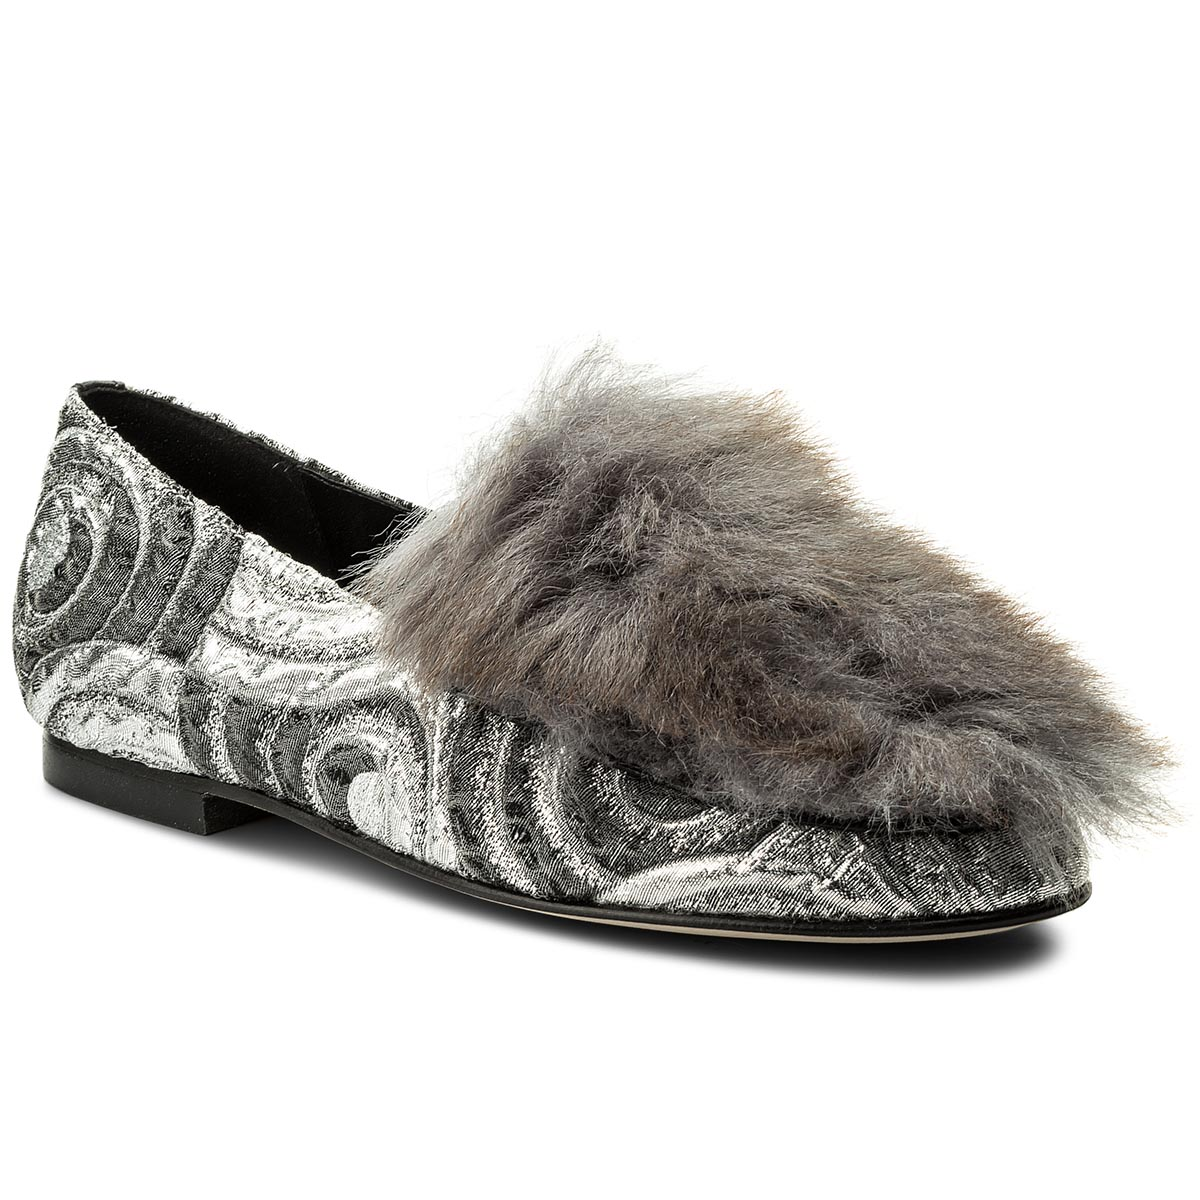 Loafers HEGO'S MILANO - 1027 Circles Argento/Fur Bianco